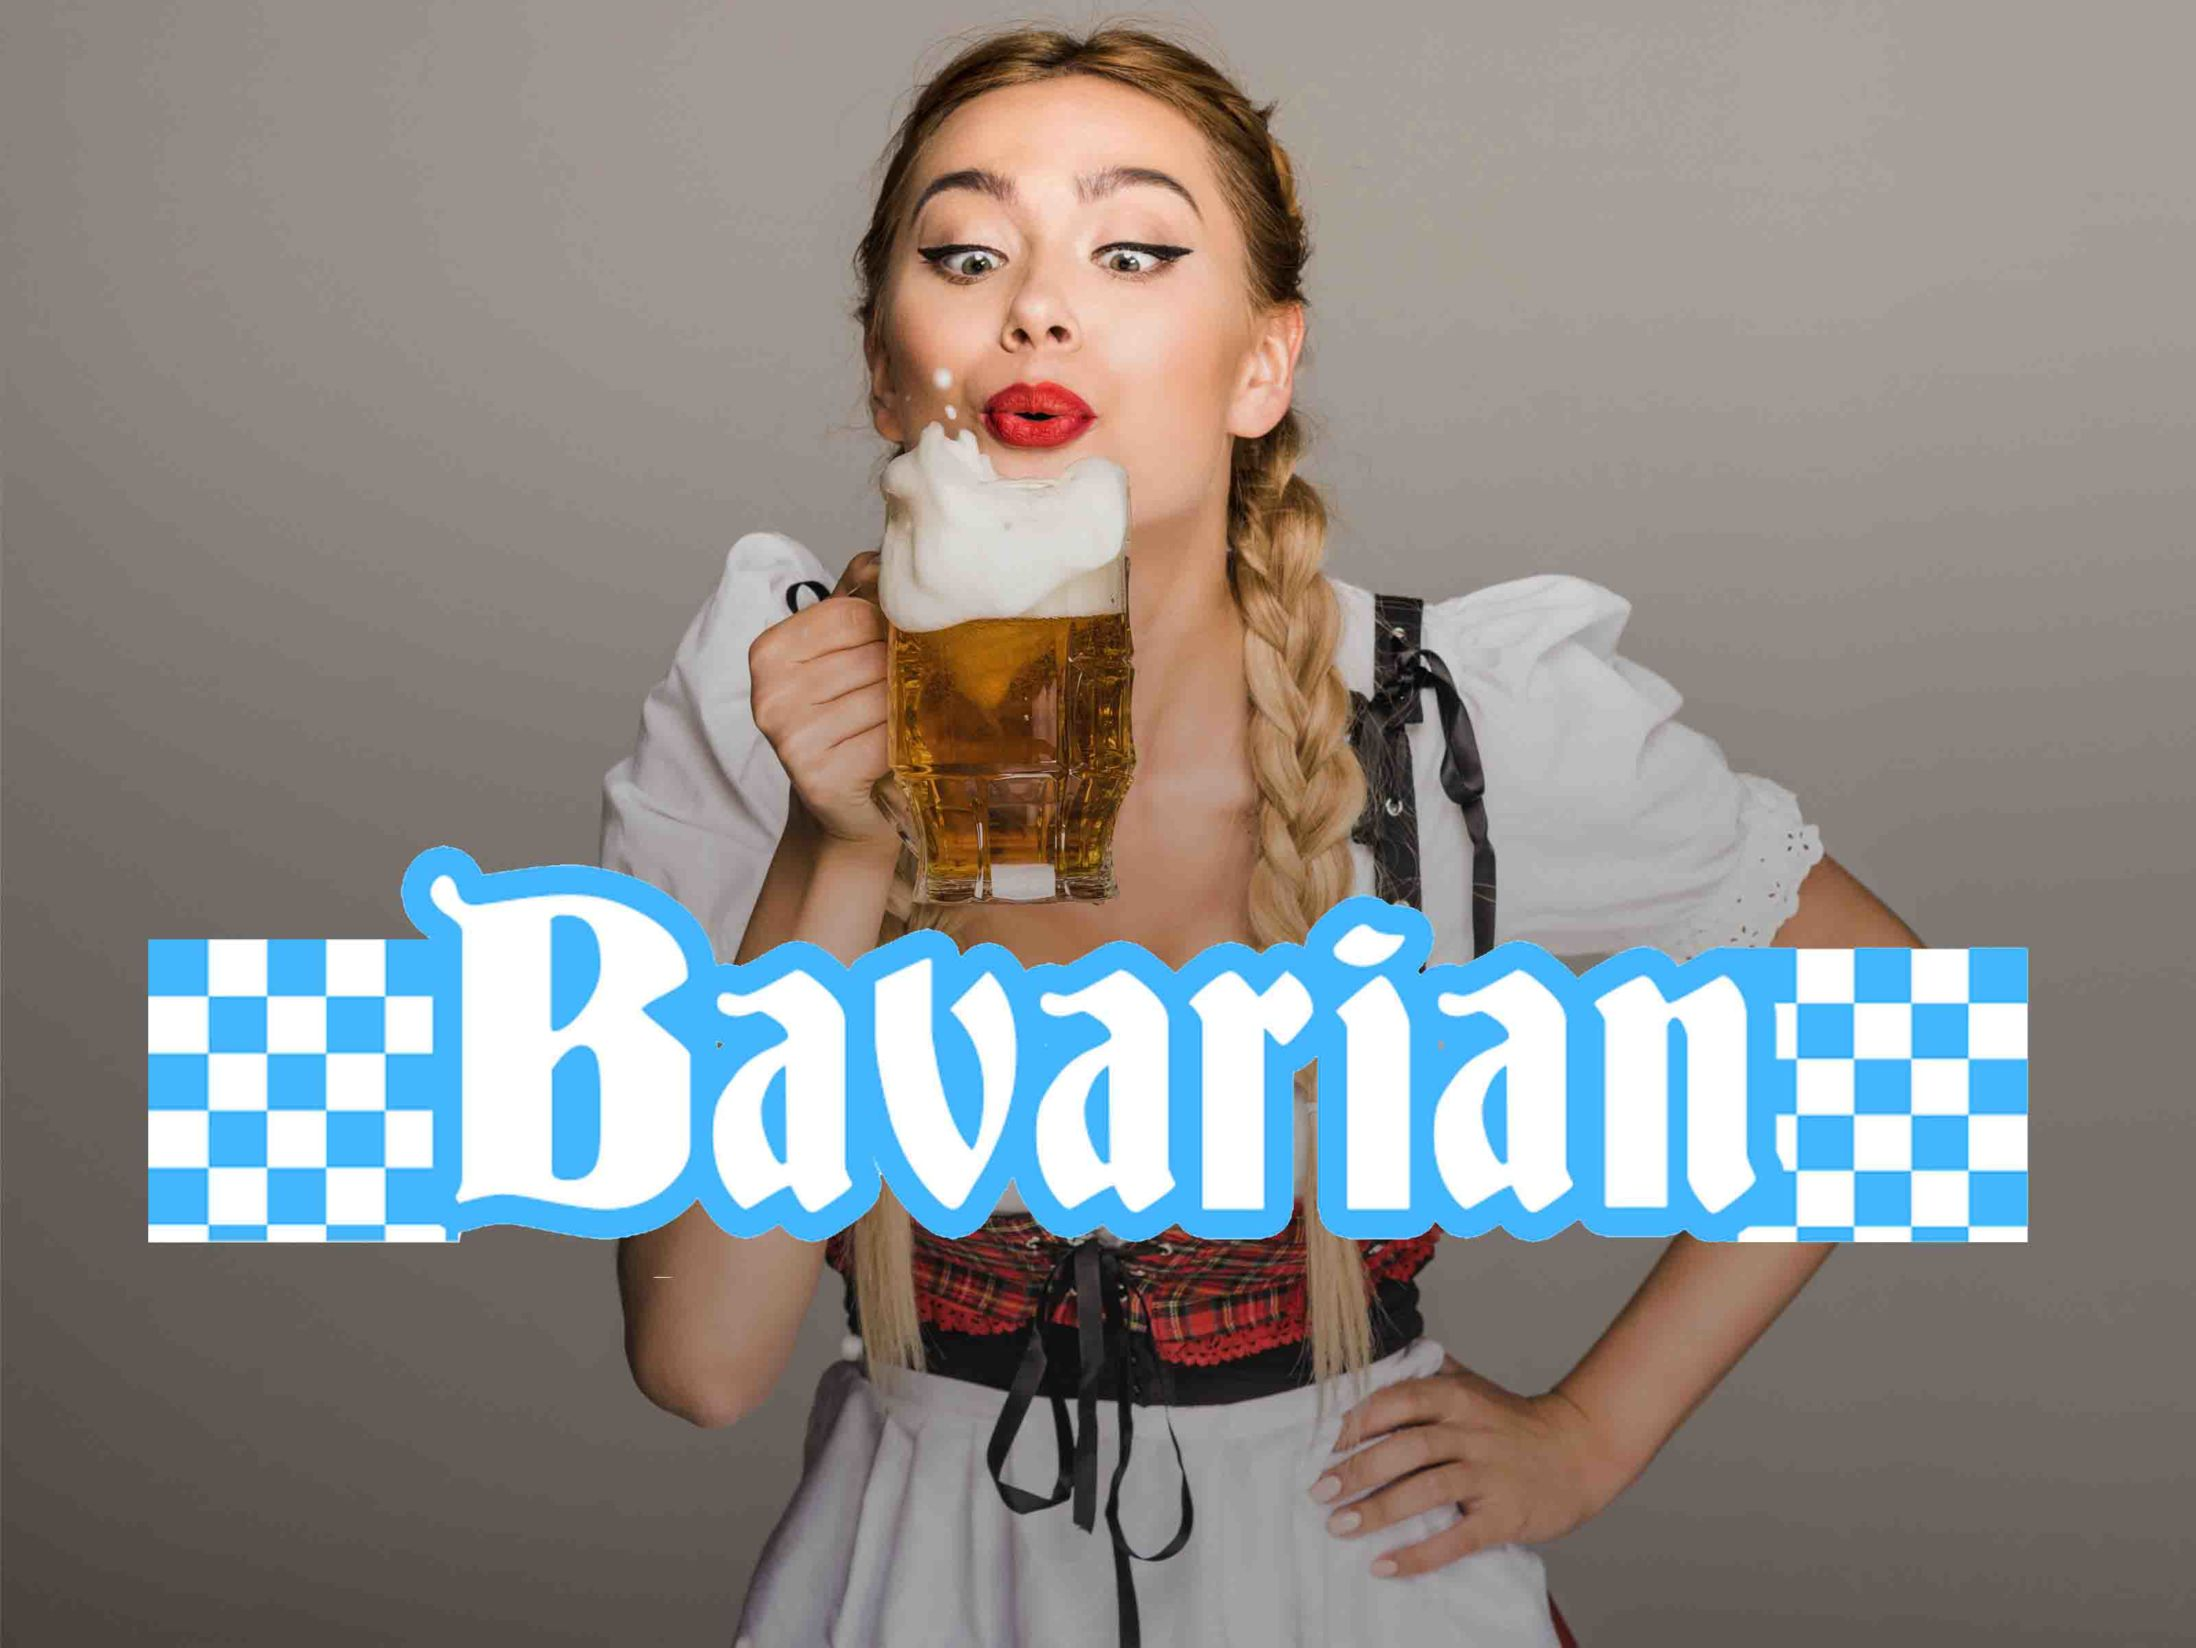 Oktoberfest - Bavarian Girls